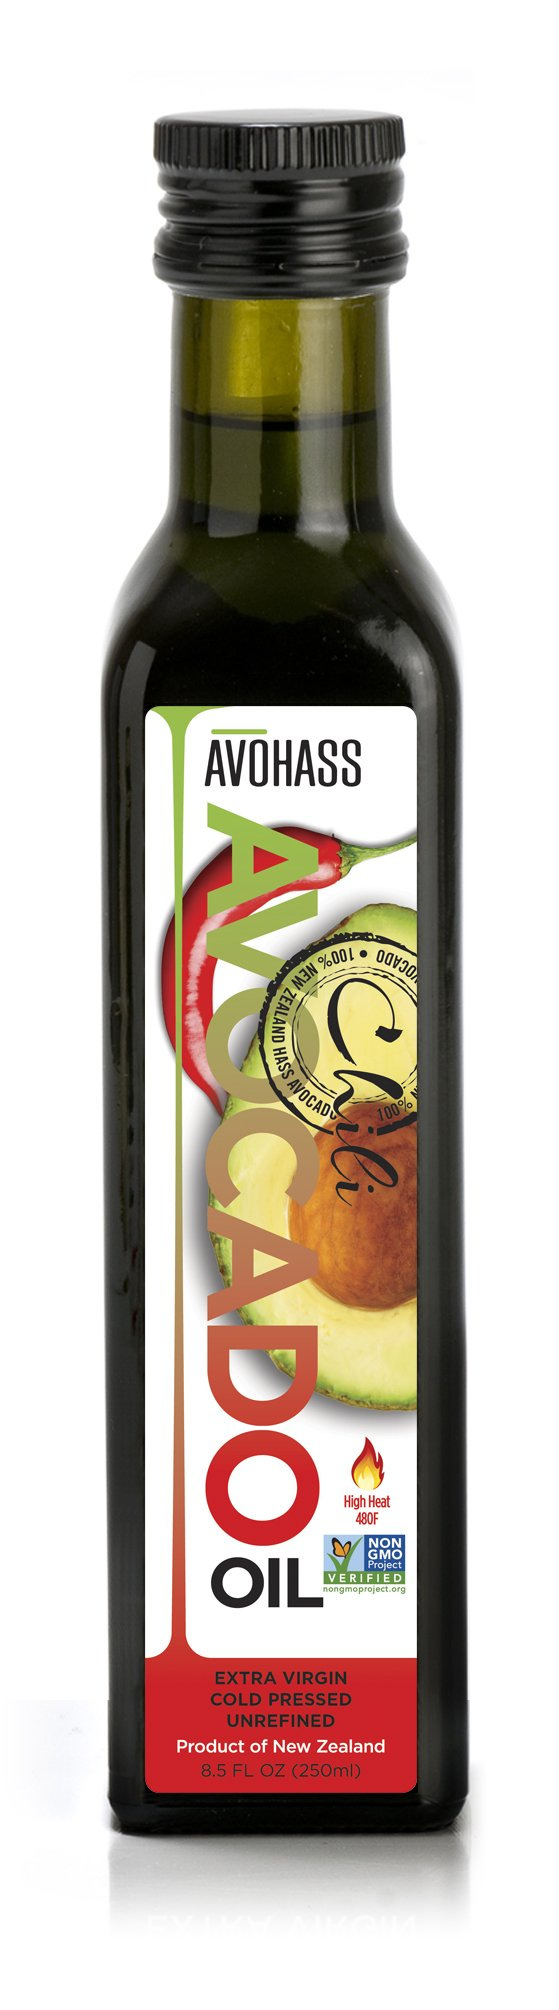 Avohass New Zealand Chili Extra Virgin Avocado Oil 8.5 fl oz Bottle by AVOHASS